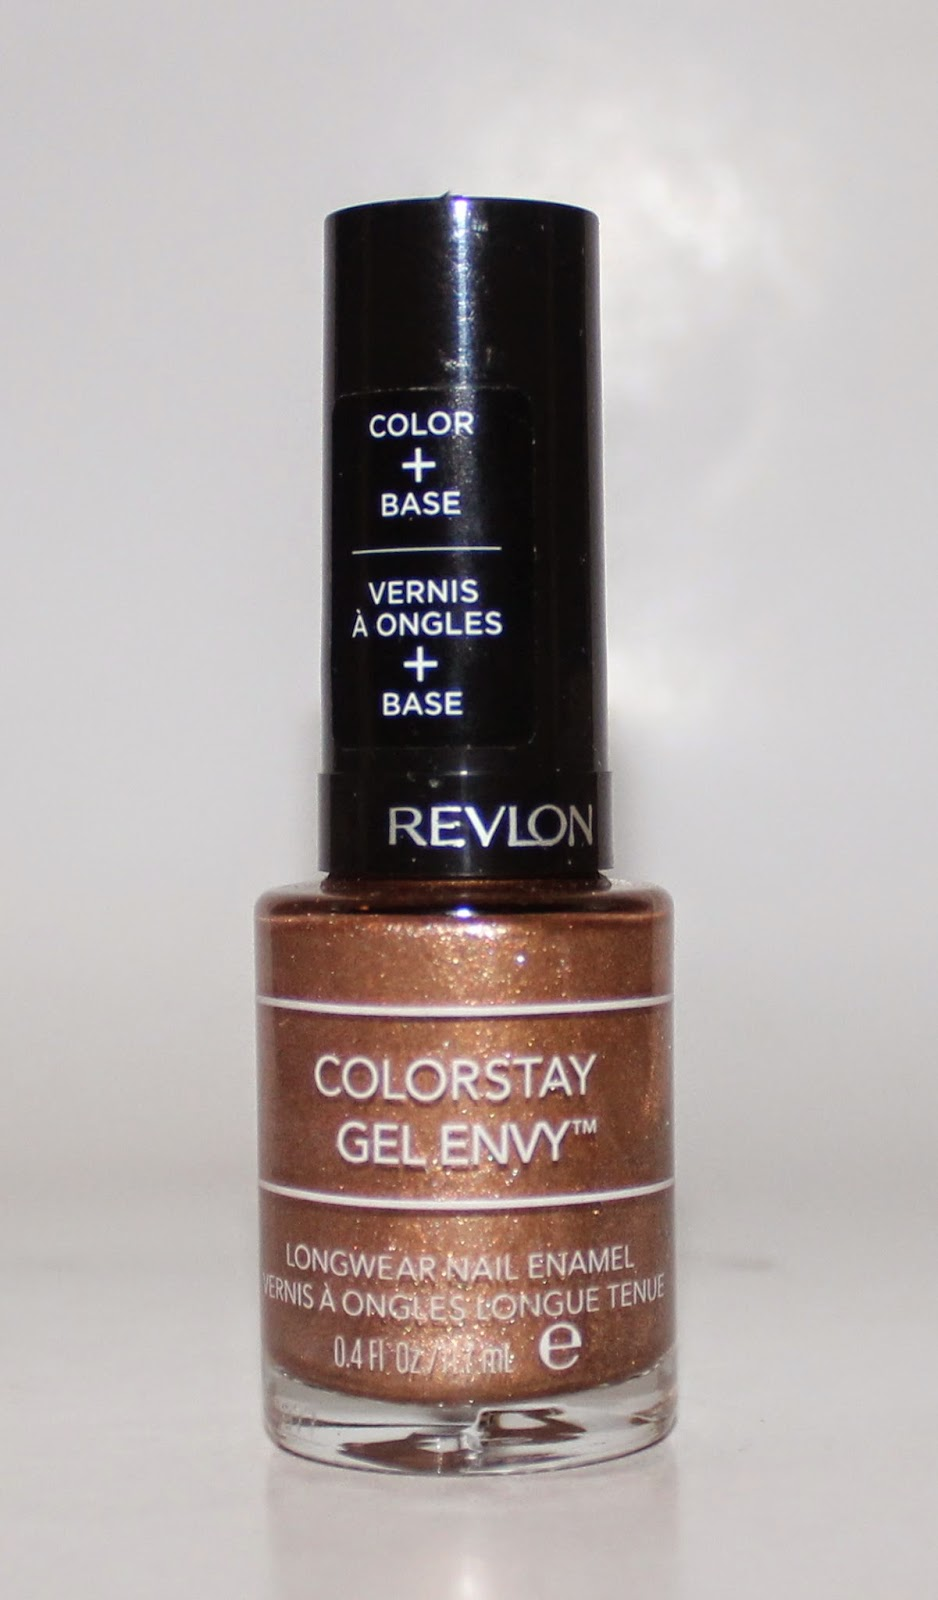 Revlon ColorStay Gel Envy Longwear Nail Enamel in Double Down